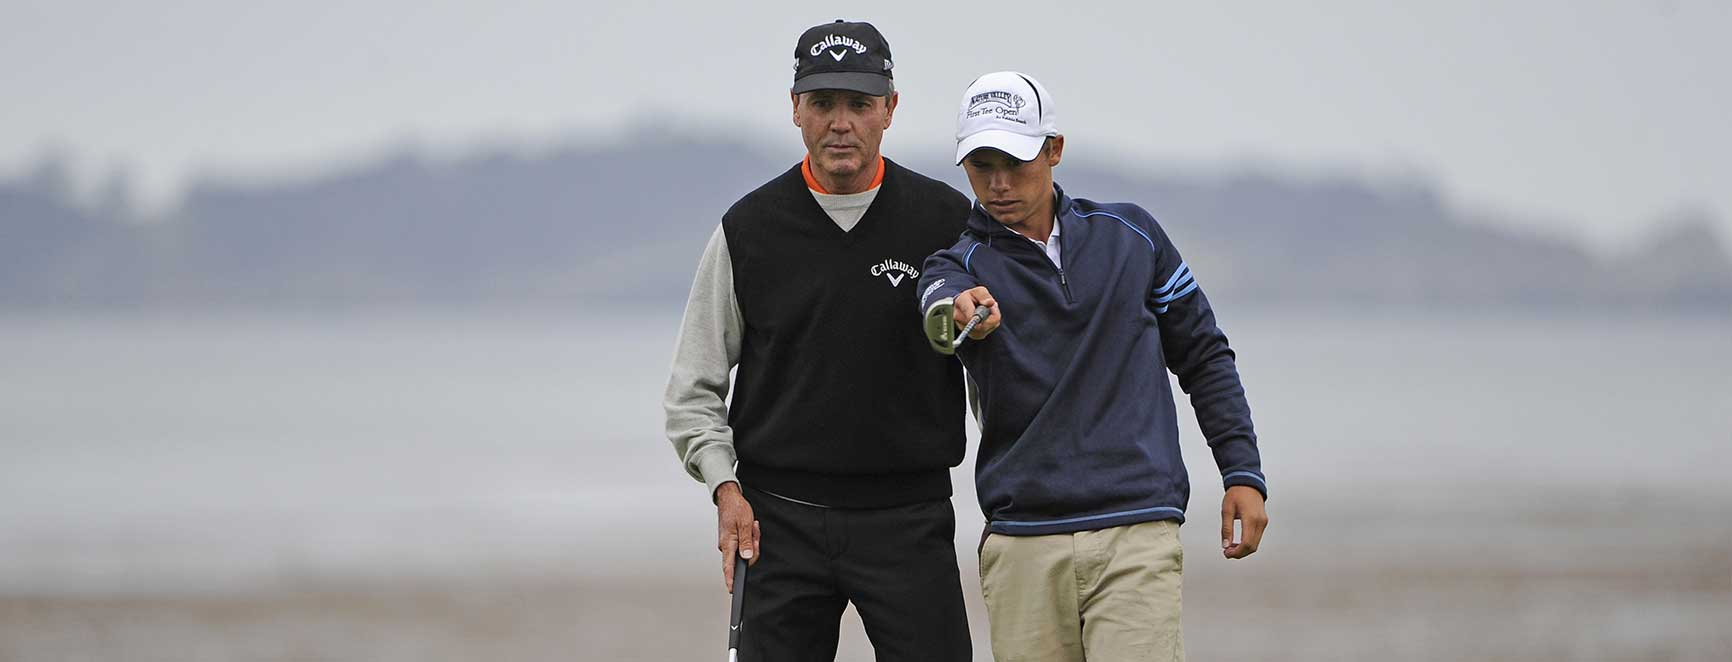 Mark advising a younster on a putt